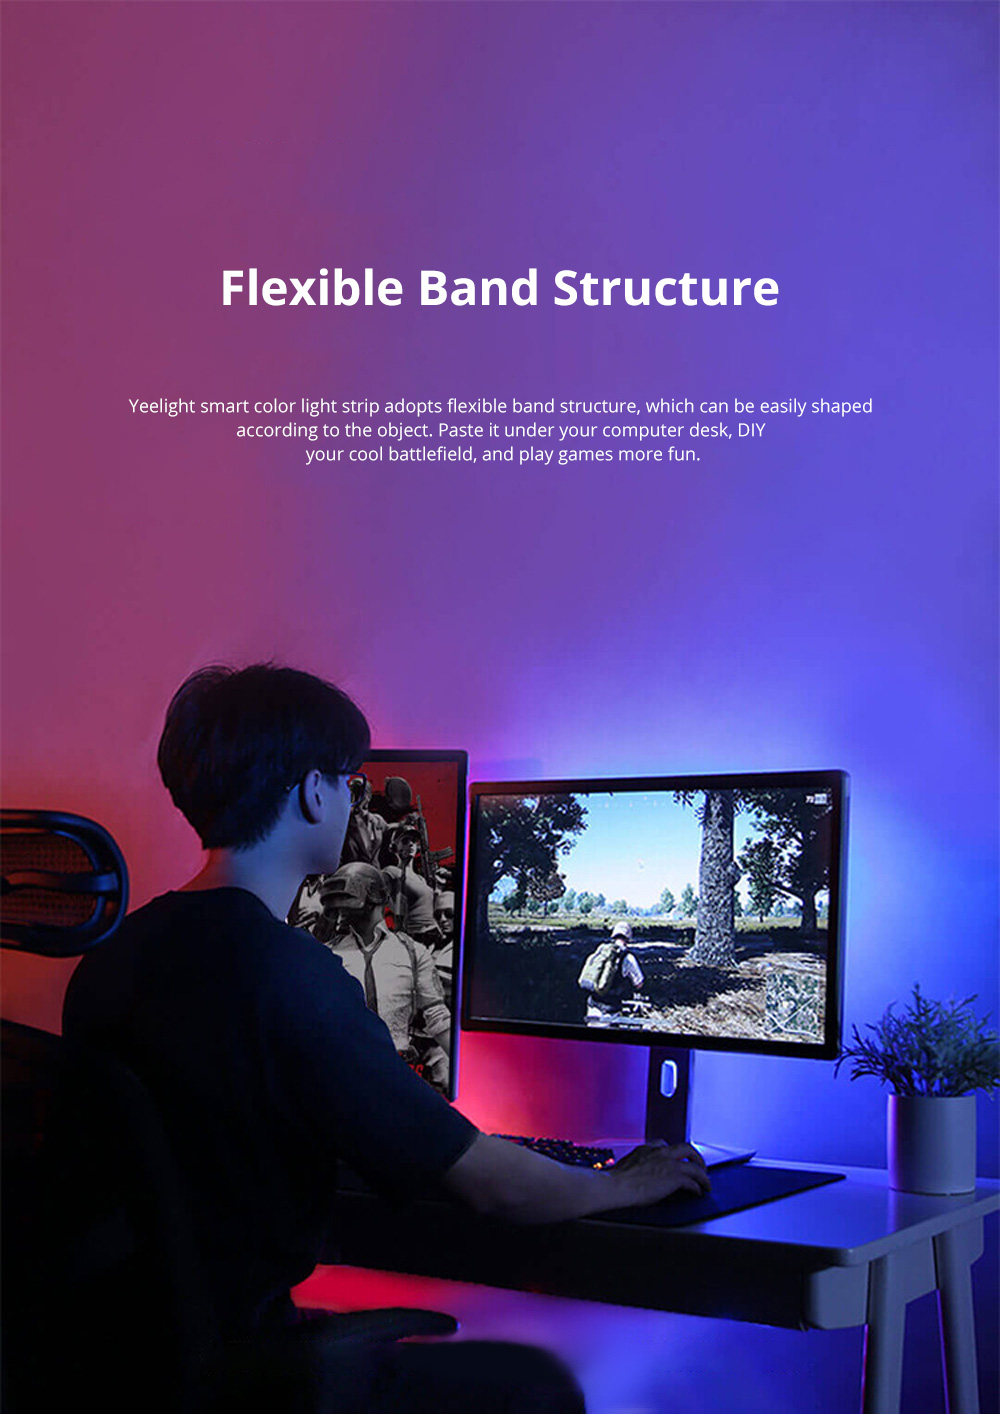 XIAOMI Smart LED Strip Lights Flexible Color Changing Light Strip with IR Remote Controller for Home Lighting Bedroom Bar Party 1